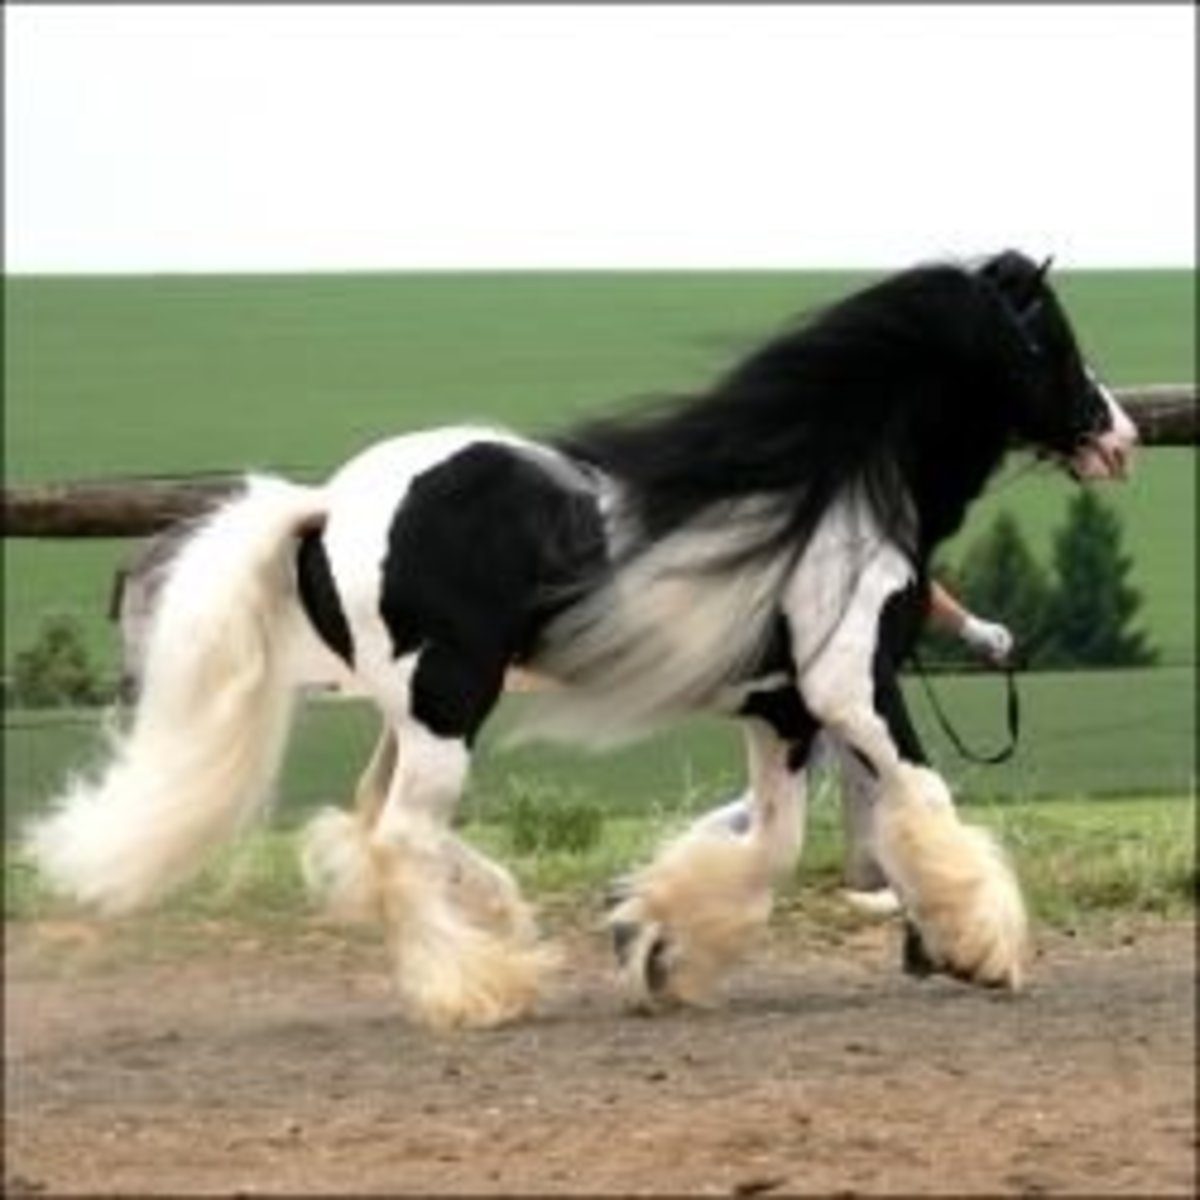 I Love Black Friesians and Gypsy Vanners - The Horses of Fairy Tales